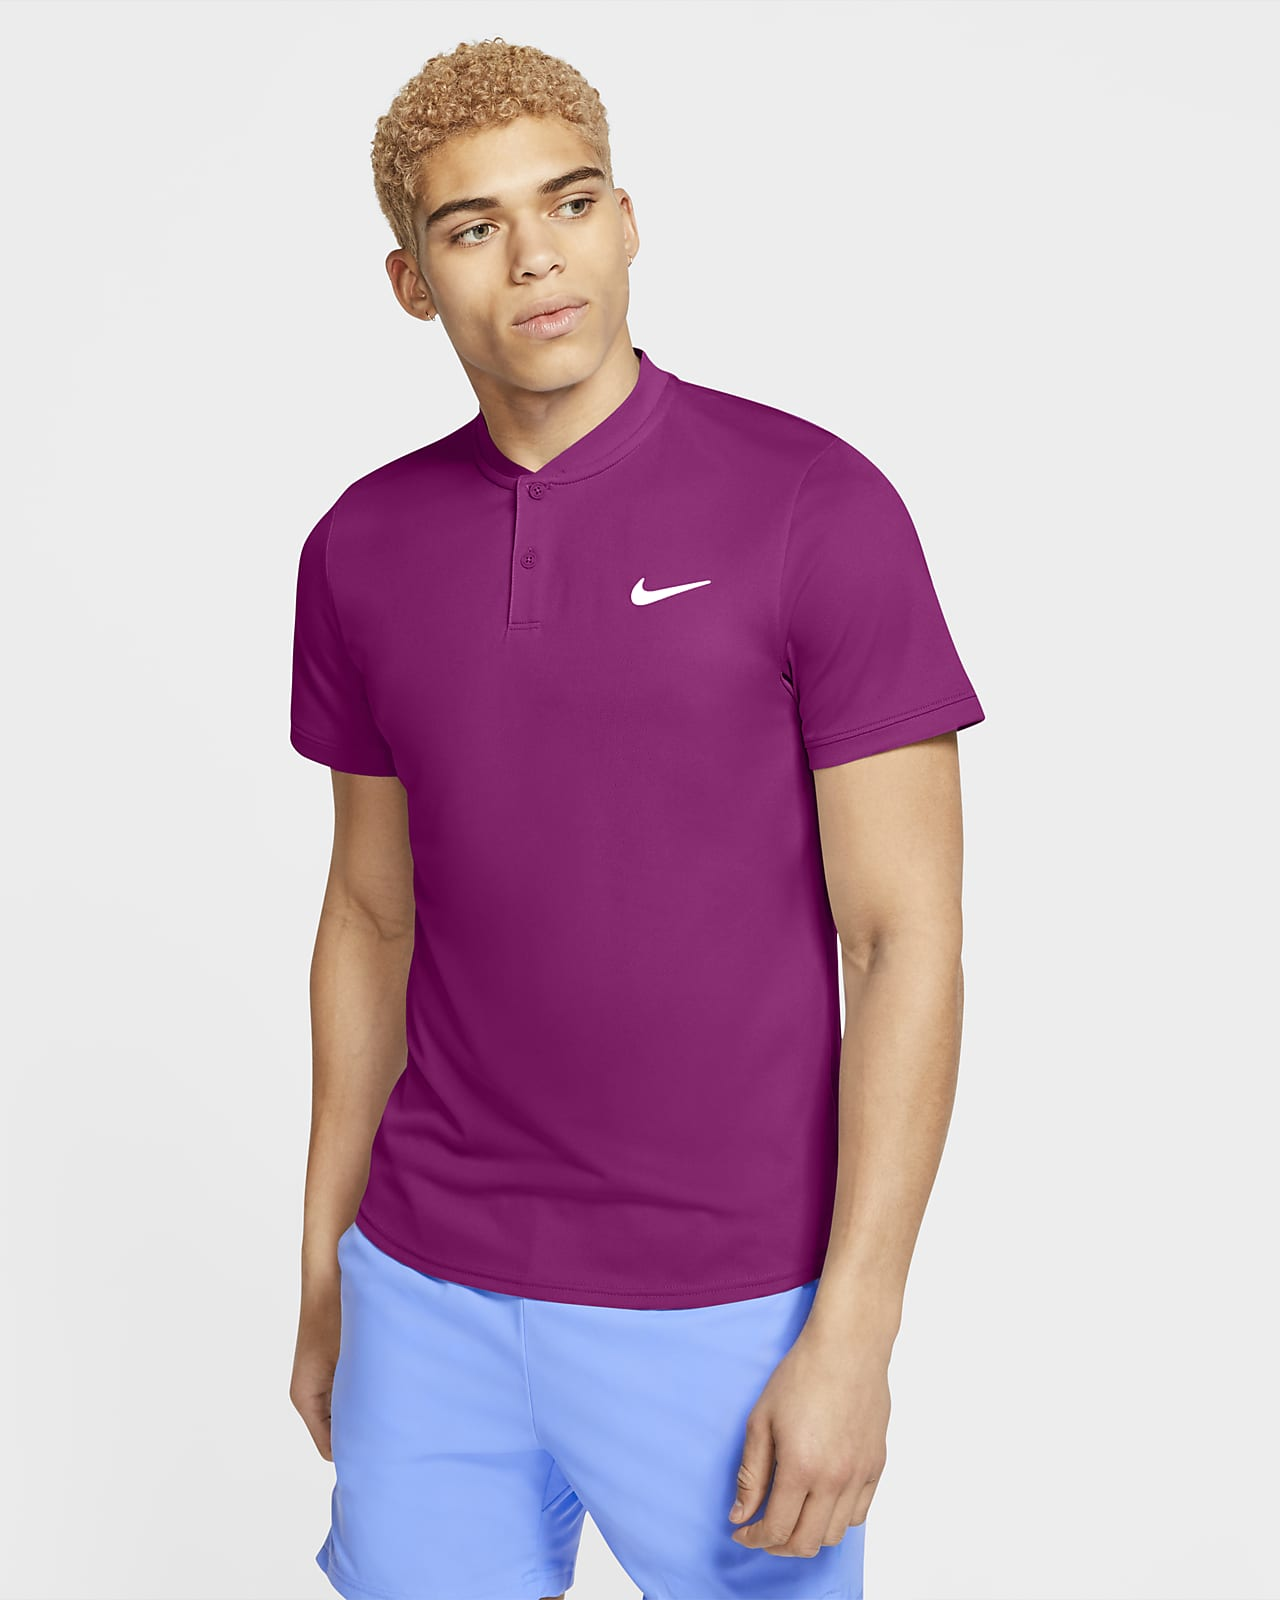 NikeCourt Dri-FIT 男款網球衫